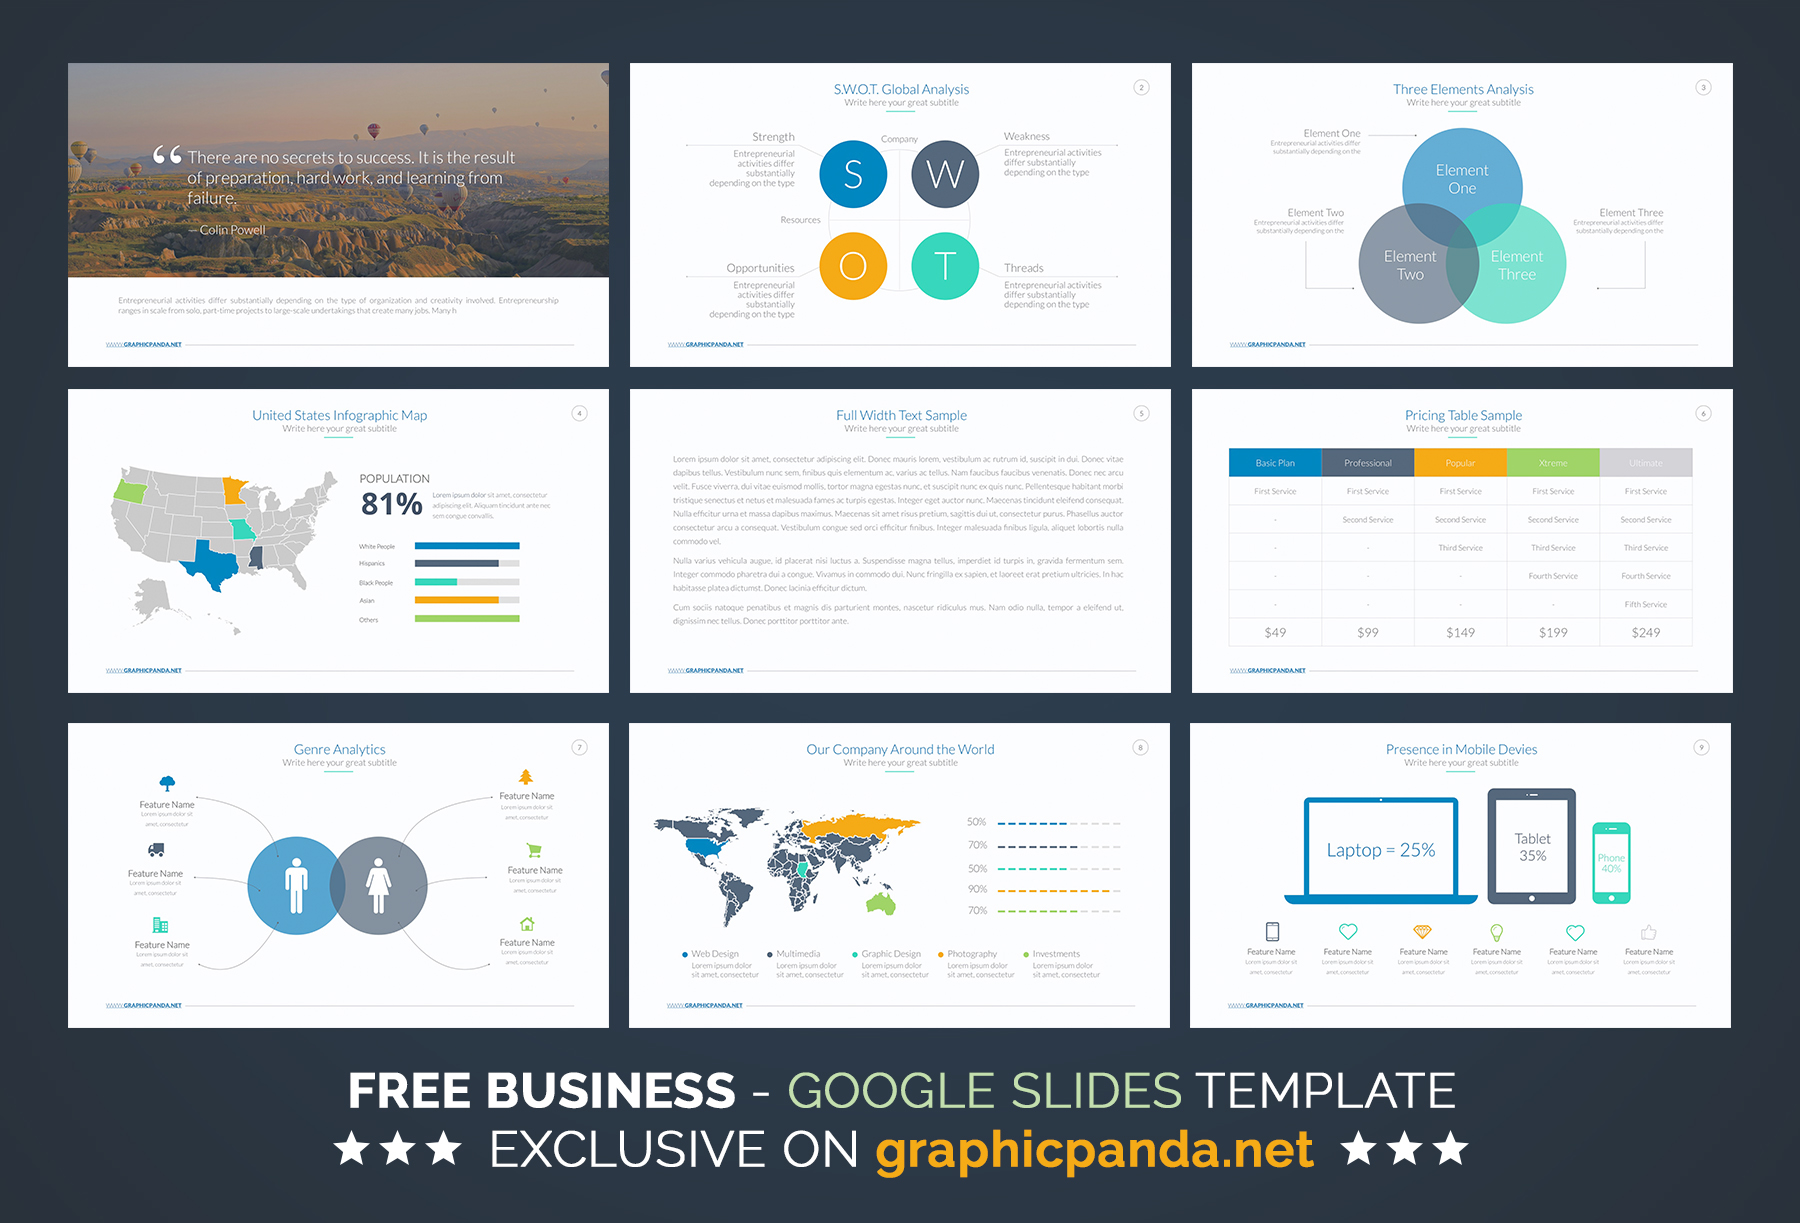 Free business plan google slides template on behance friedricerecipe Choice Image